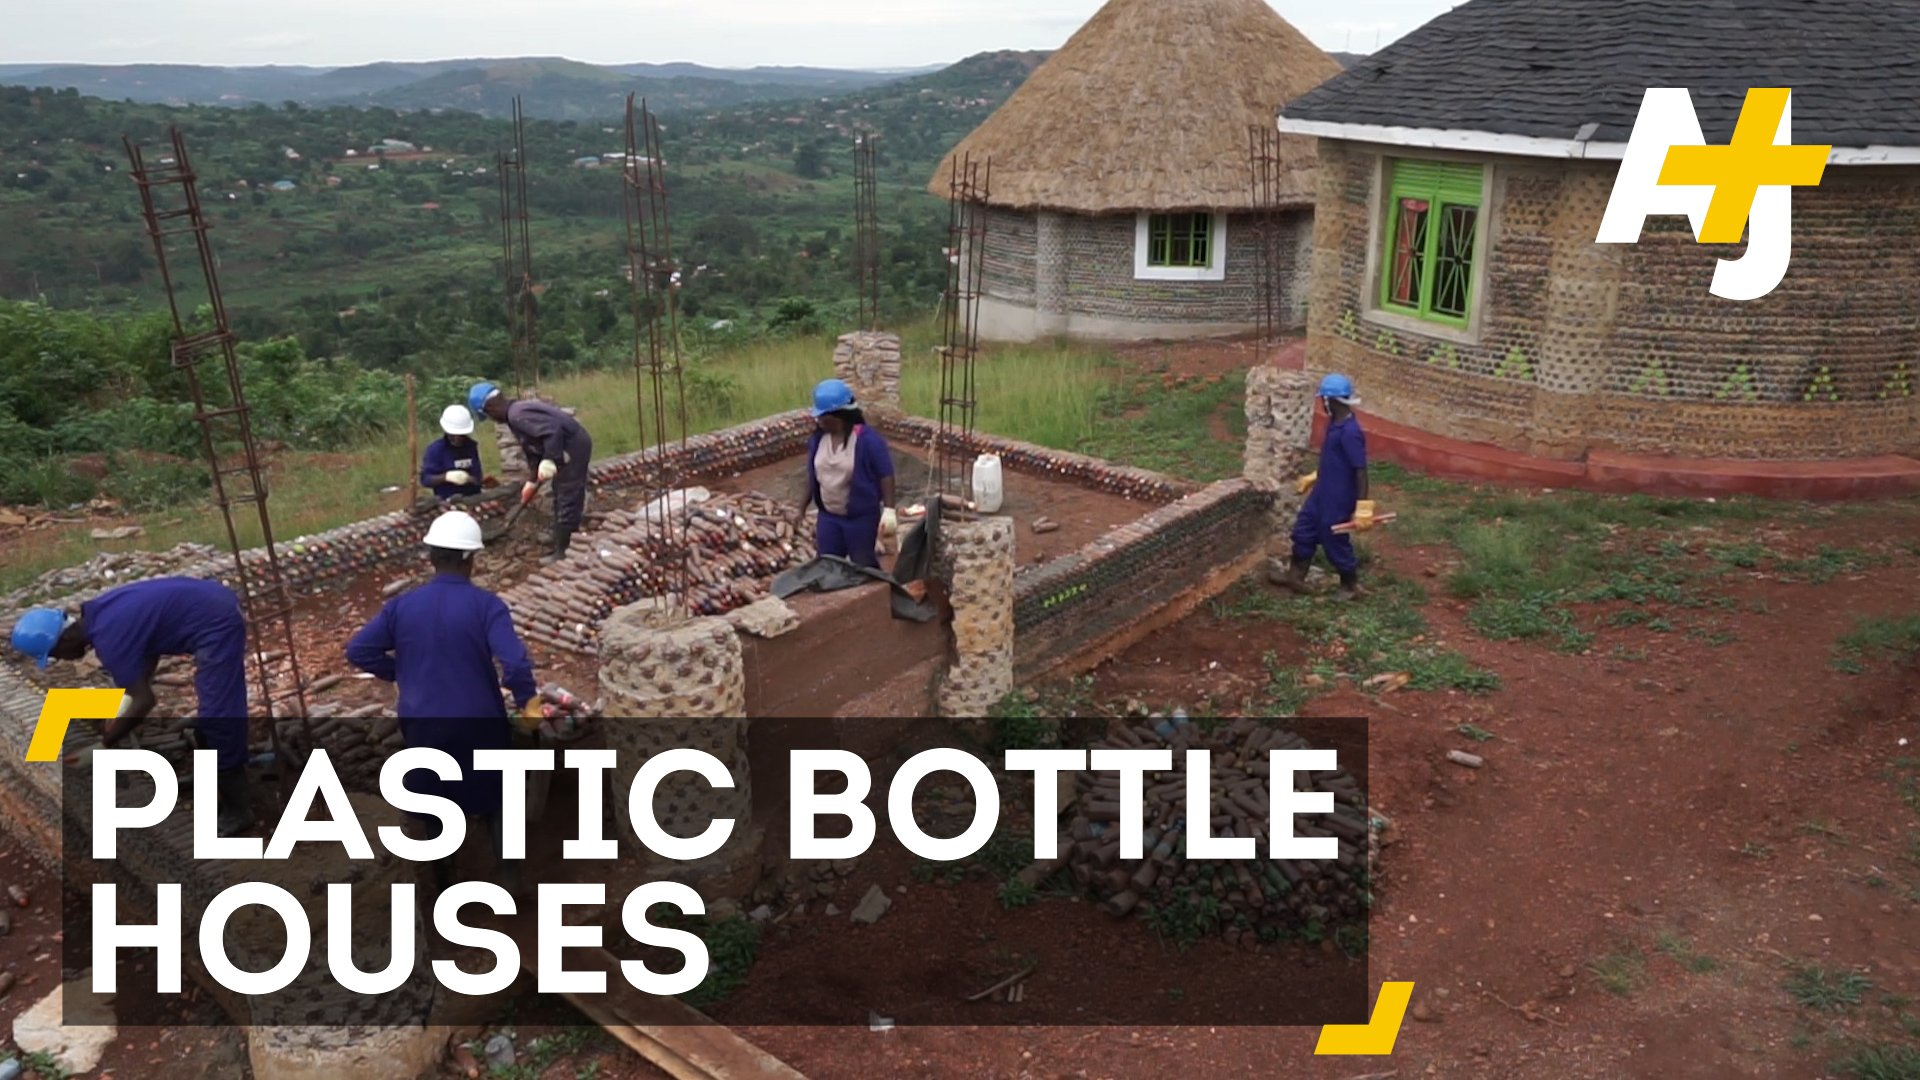 Would you live in a house made out of plastic bottles? https://t.co/AqqxXHZRnd